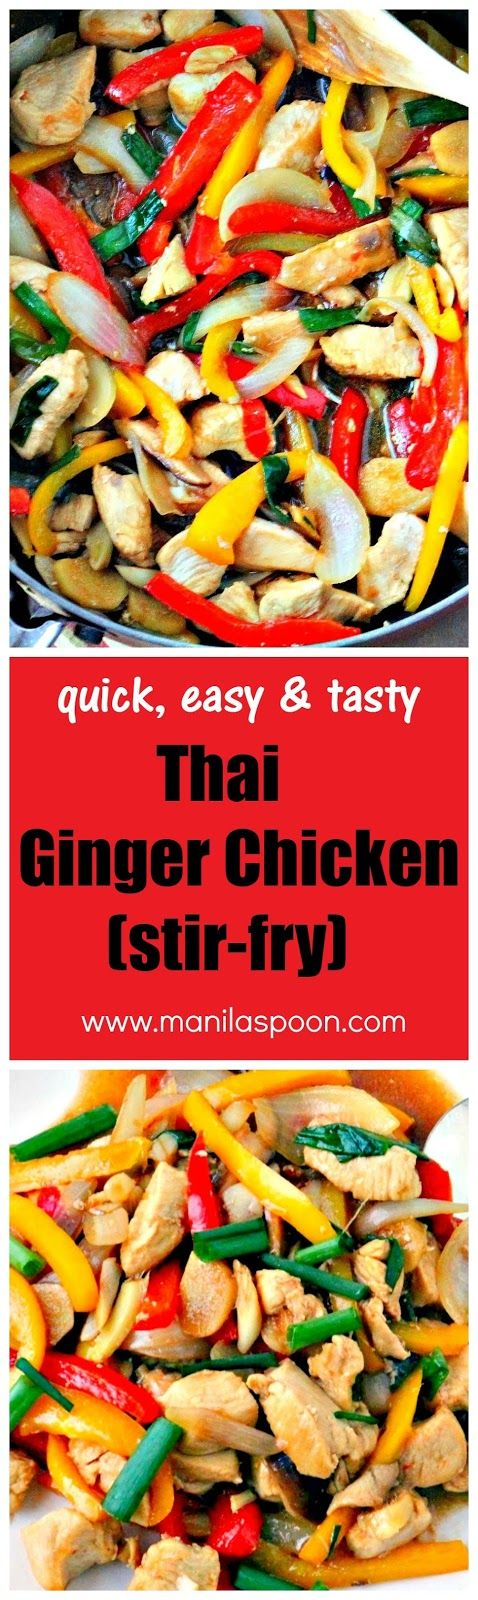 245 best our best recipes for pinning manila spoon images on easy and full of flavors thai ginger chicken will satisfy your cravings for asian asian food recipesasian forumfinder Image collections